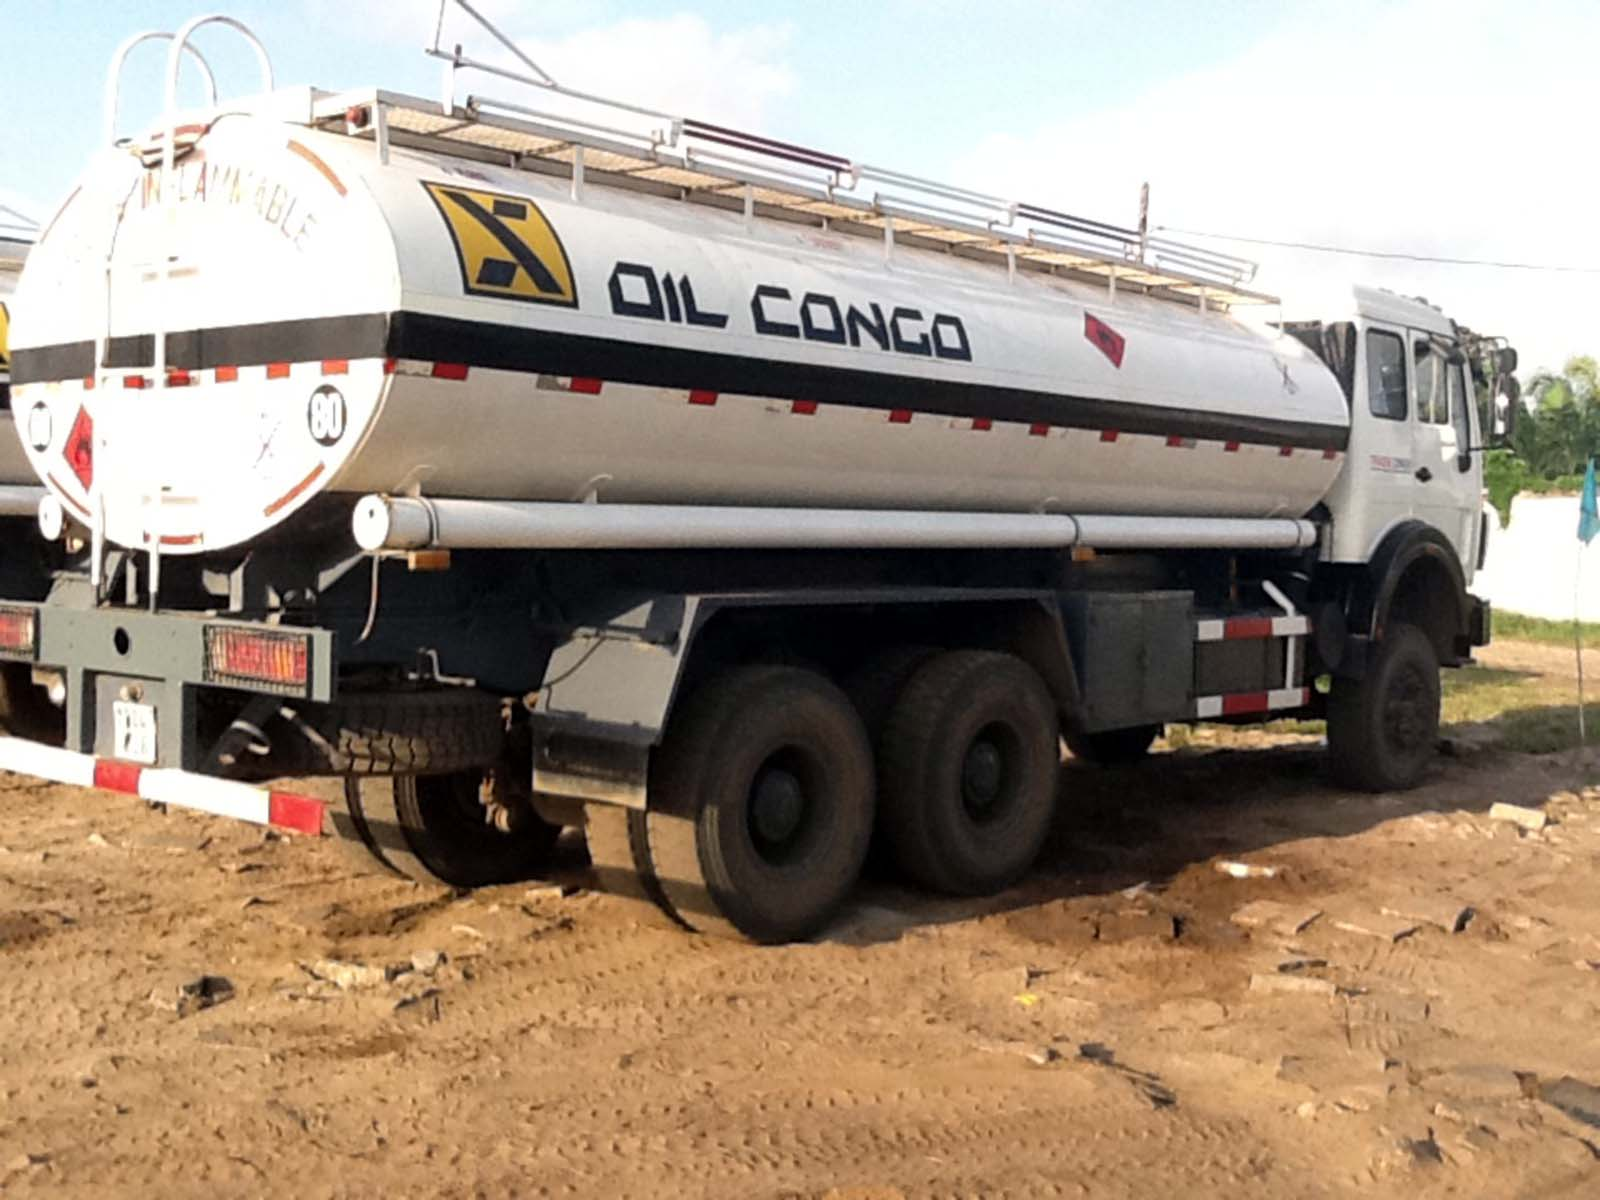 12 units 20 CBM beiben 2528 oil tanker trucks are exported to CONGO, kinshasa